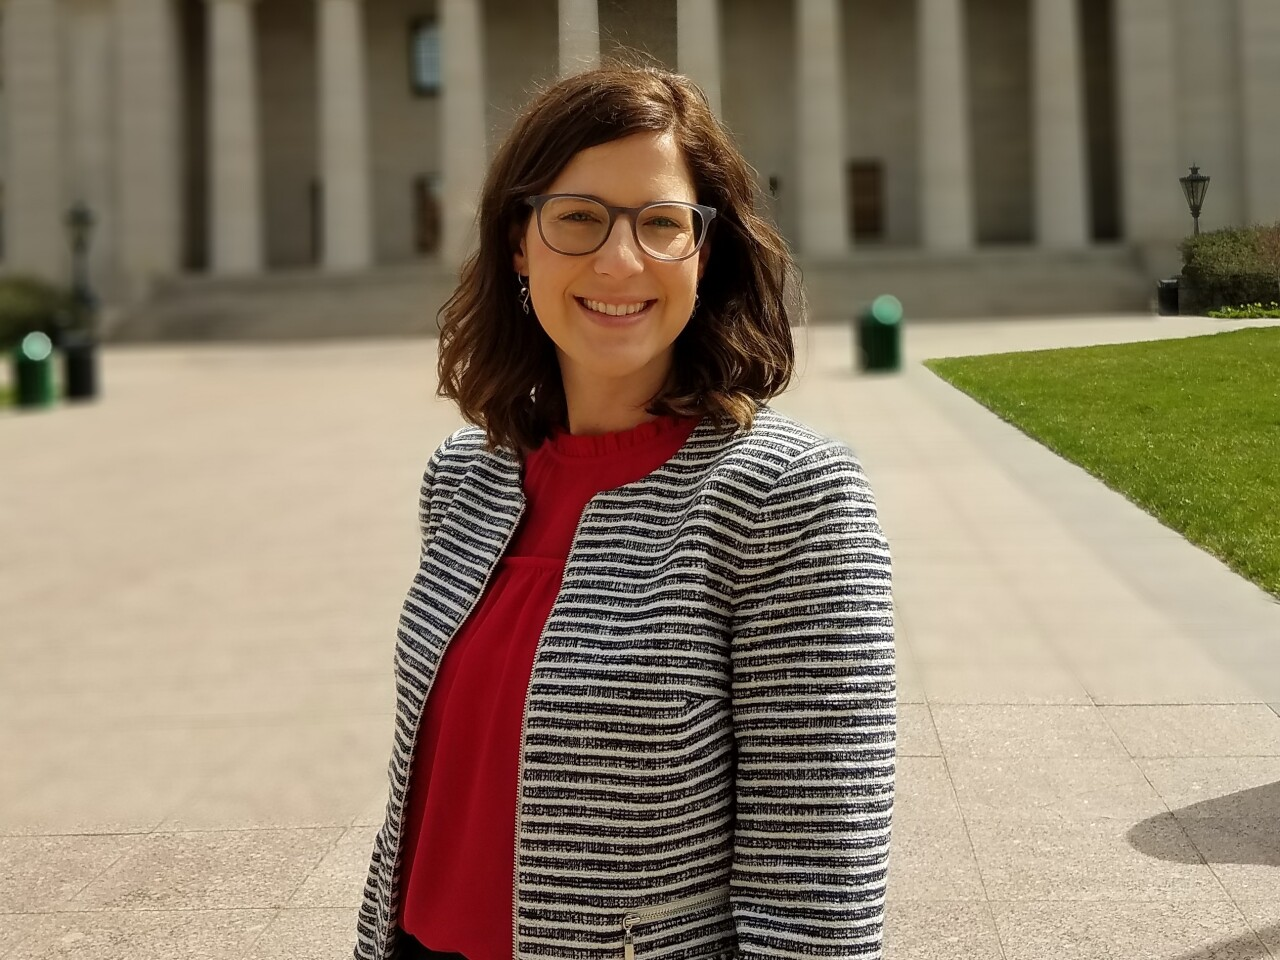 Meg DeBlase stands in front of the Ohio Statehouse building. She has shoulder-length brown hair and is wearing glasses.